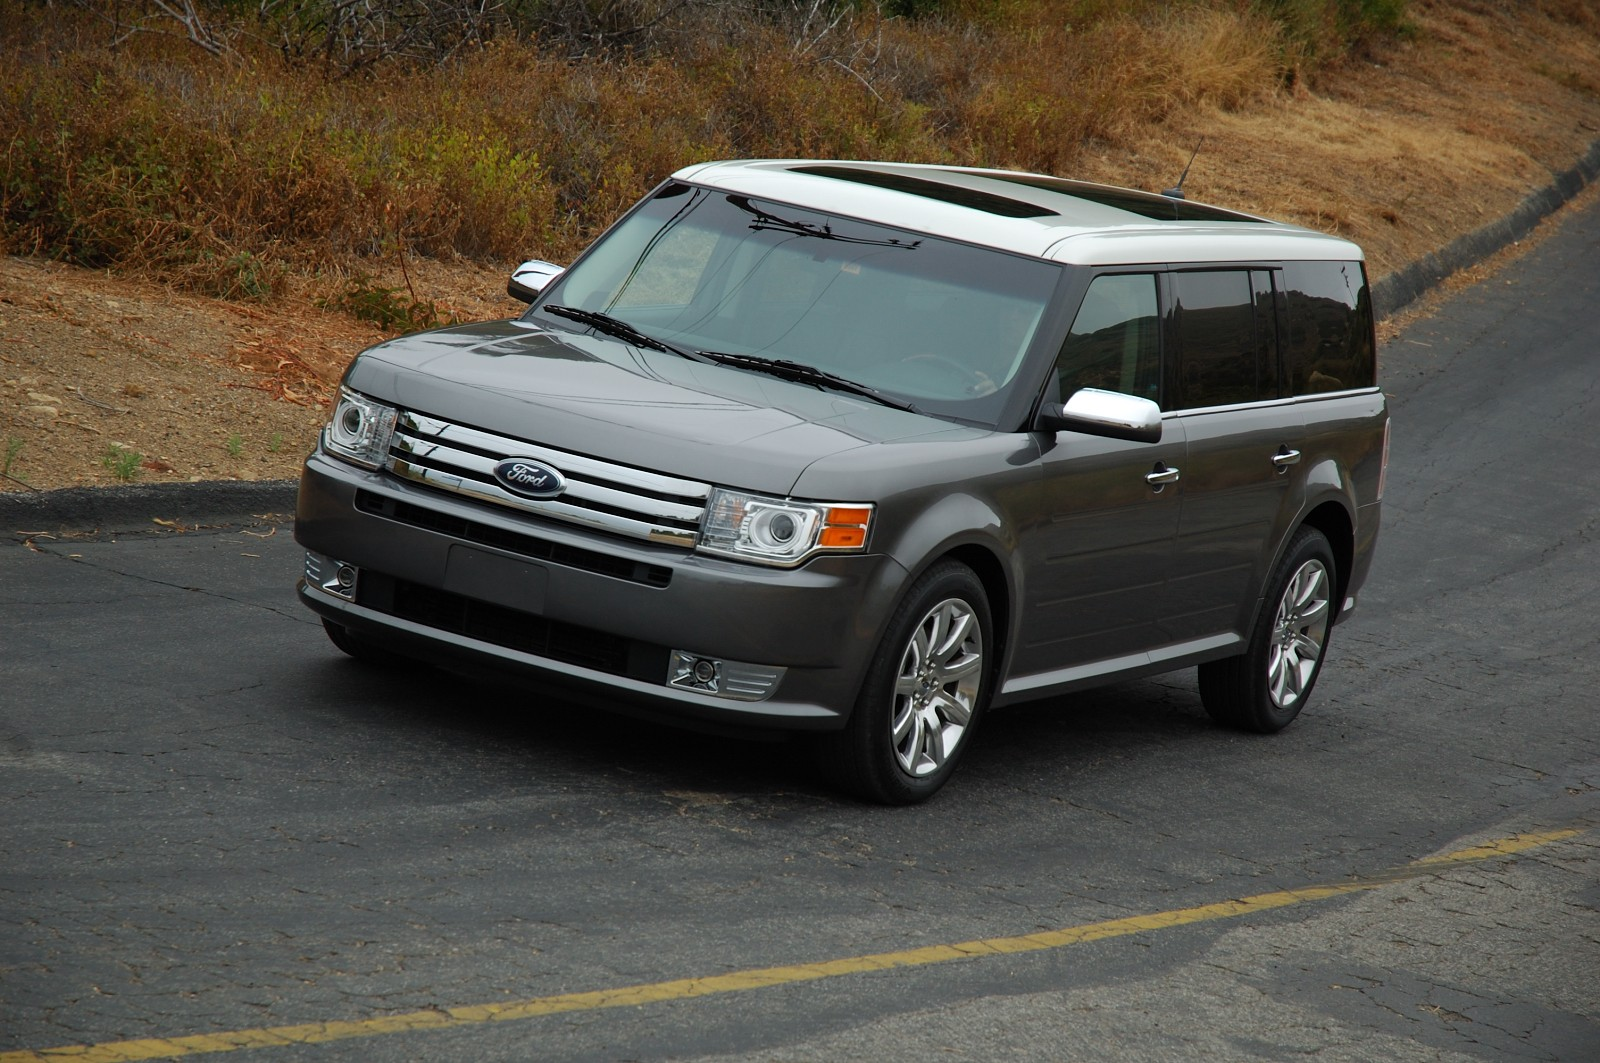 Ford flex photo - 2